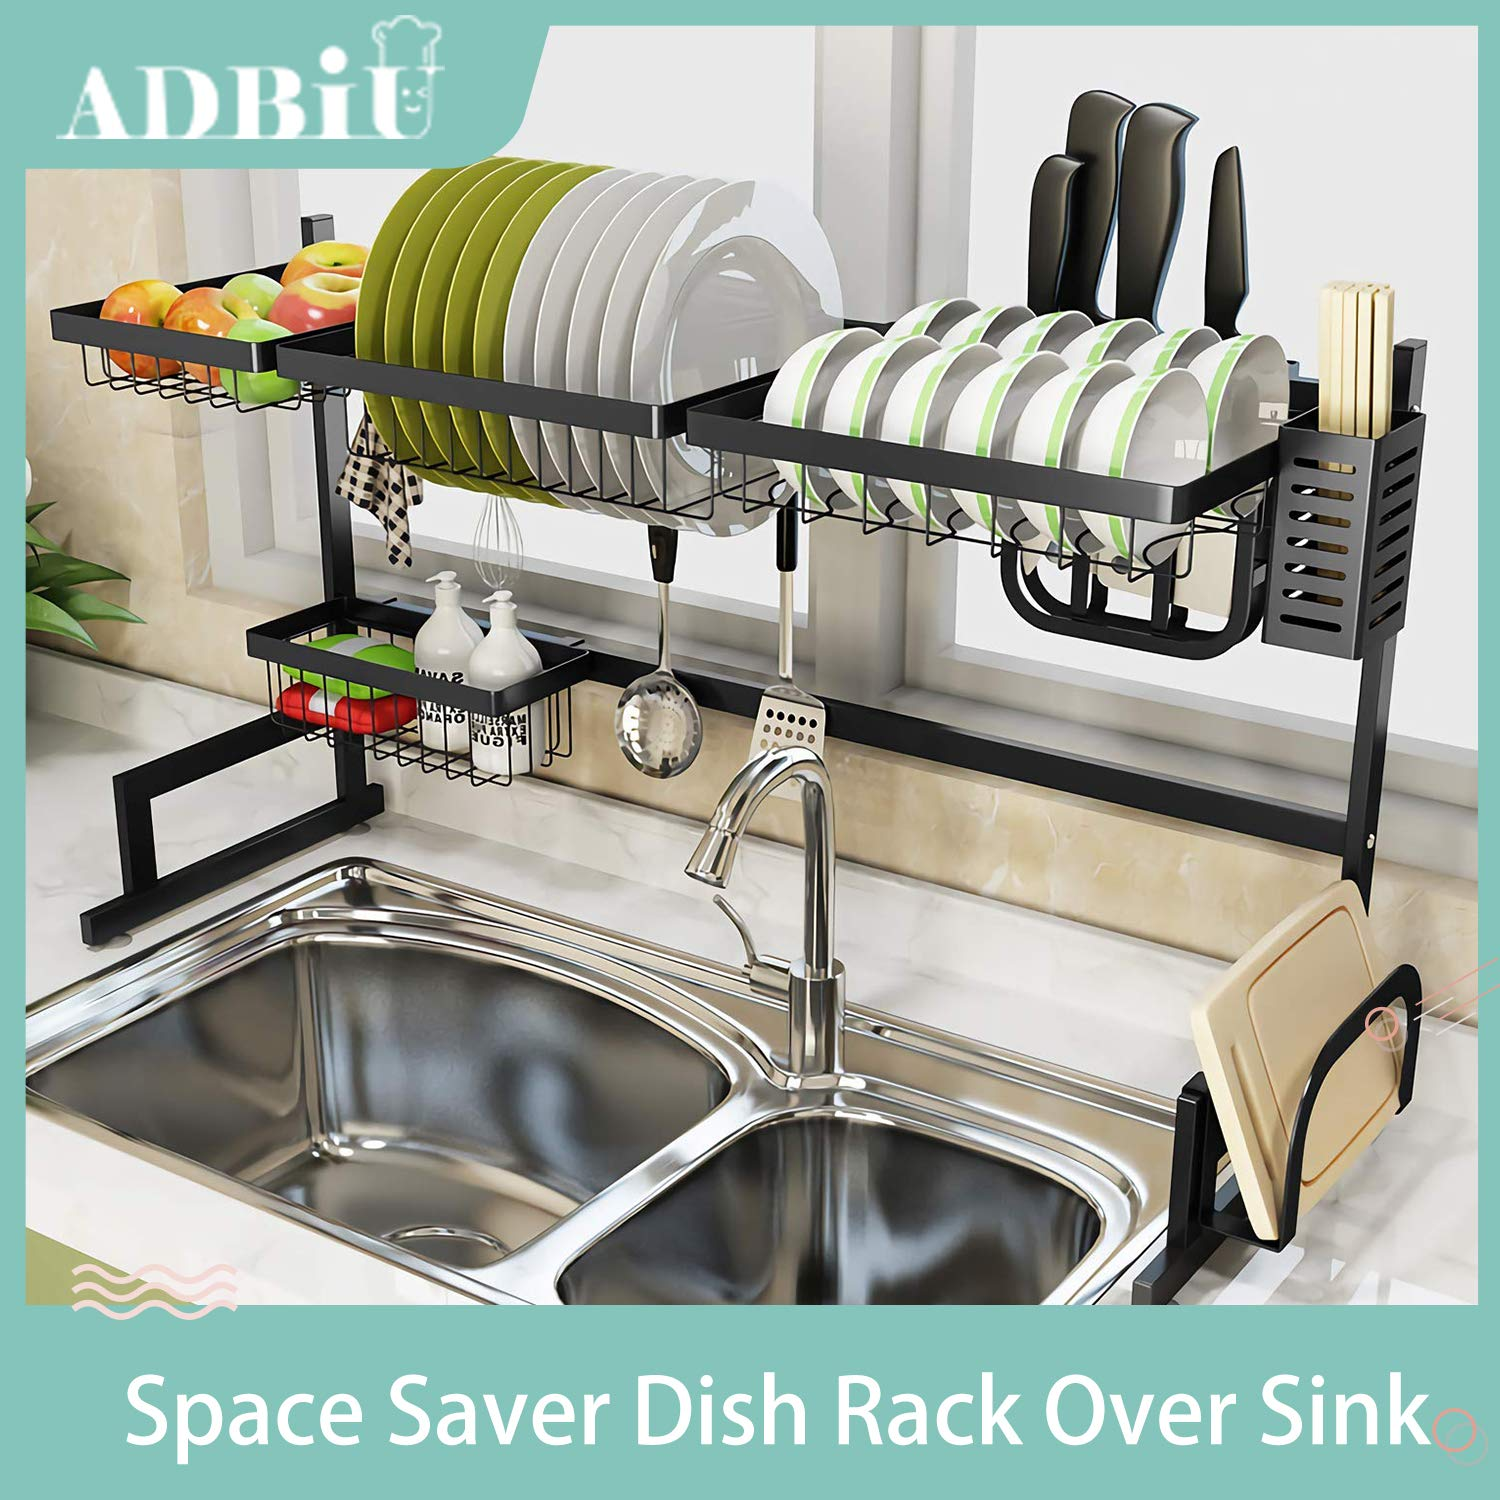 Dish Drying Rack Dish Drainer for Kitchen Sink Stainless Steel Over The Sink Shelf Storage Rack (Sink size ≤ 32.5 inch)(Black, 33.5X12.5X20.5inch) by Lyon's